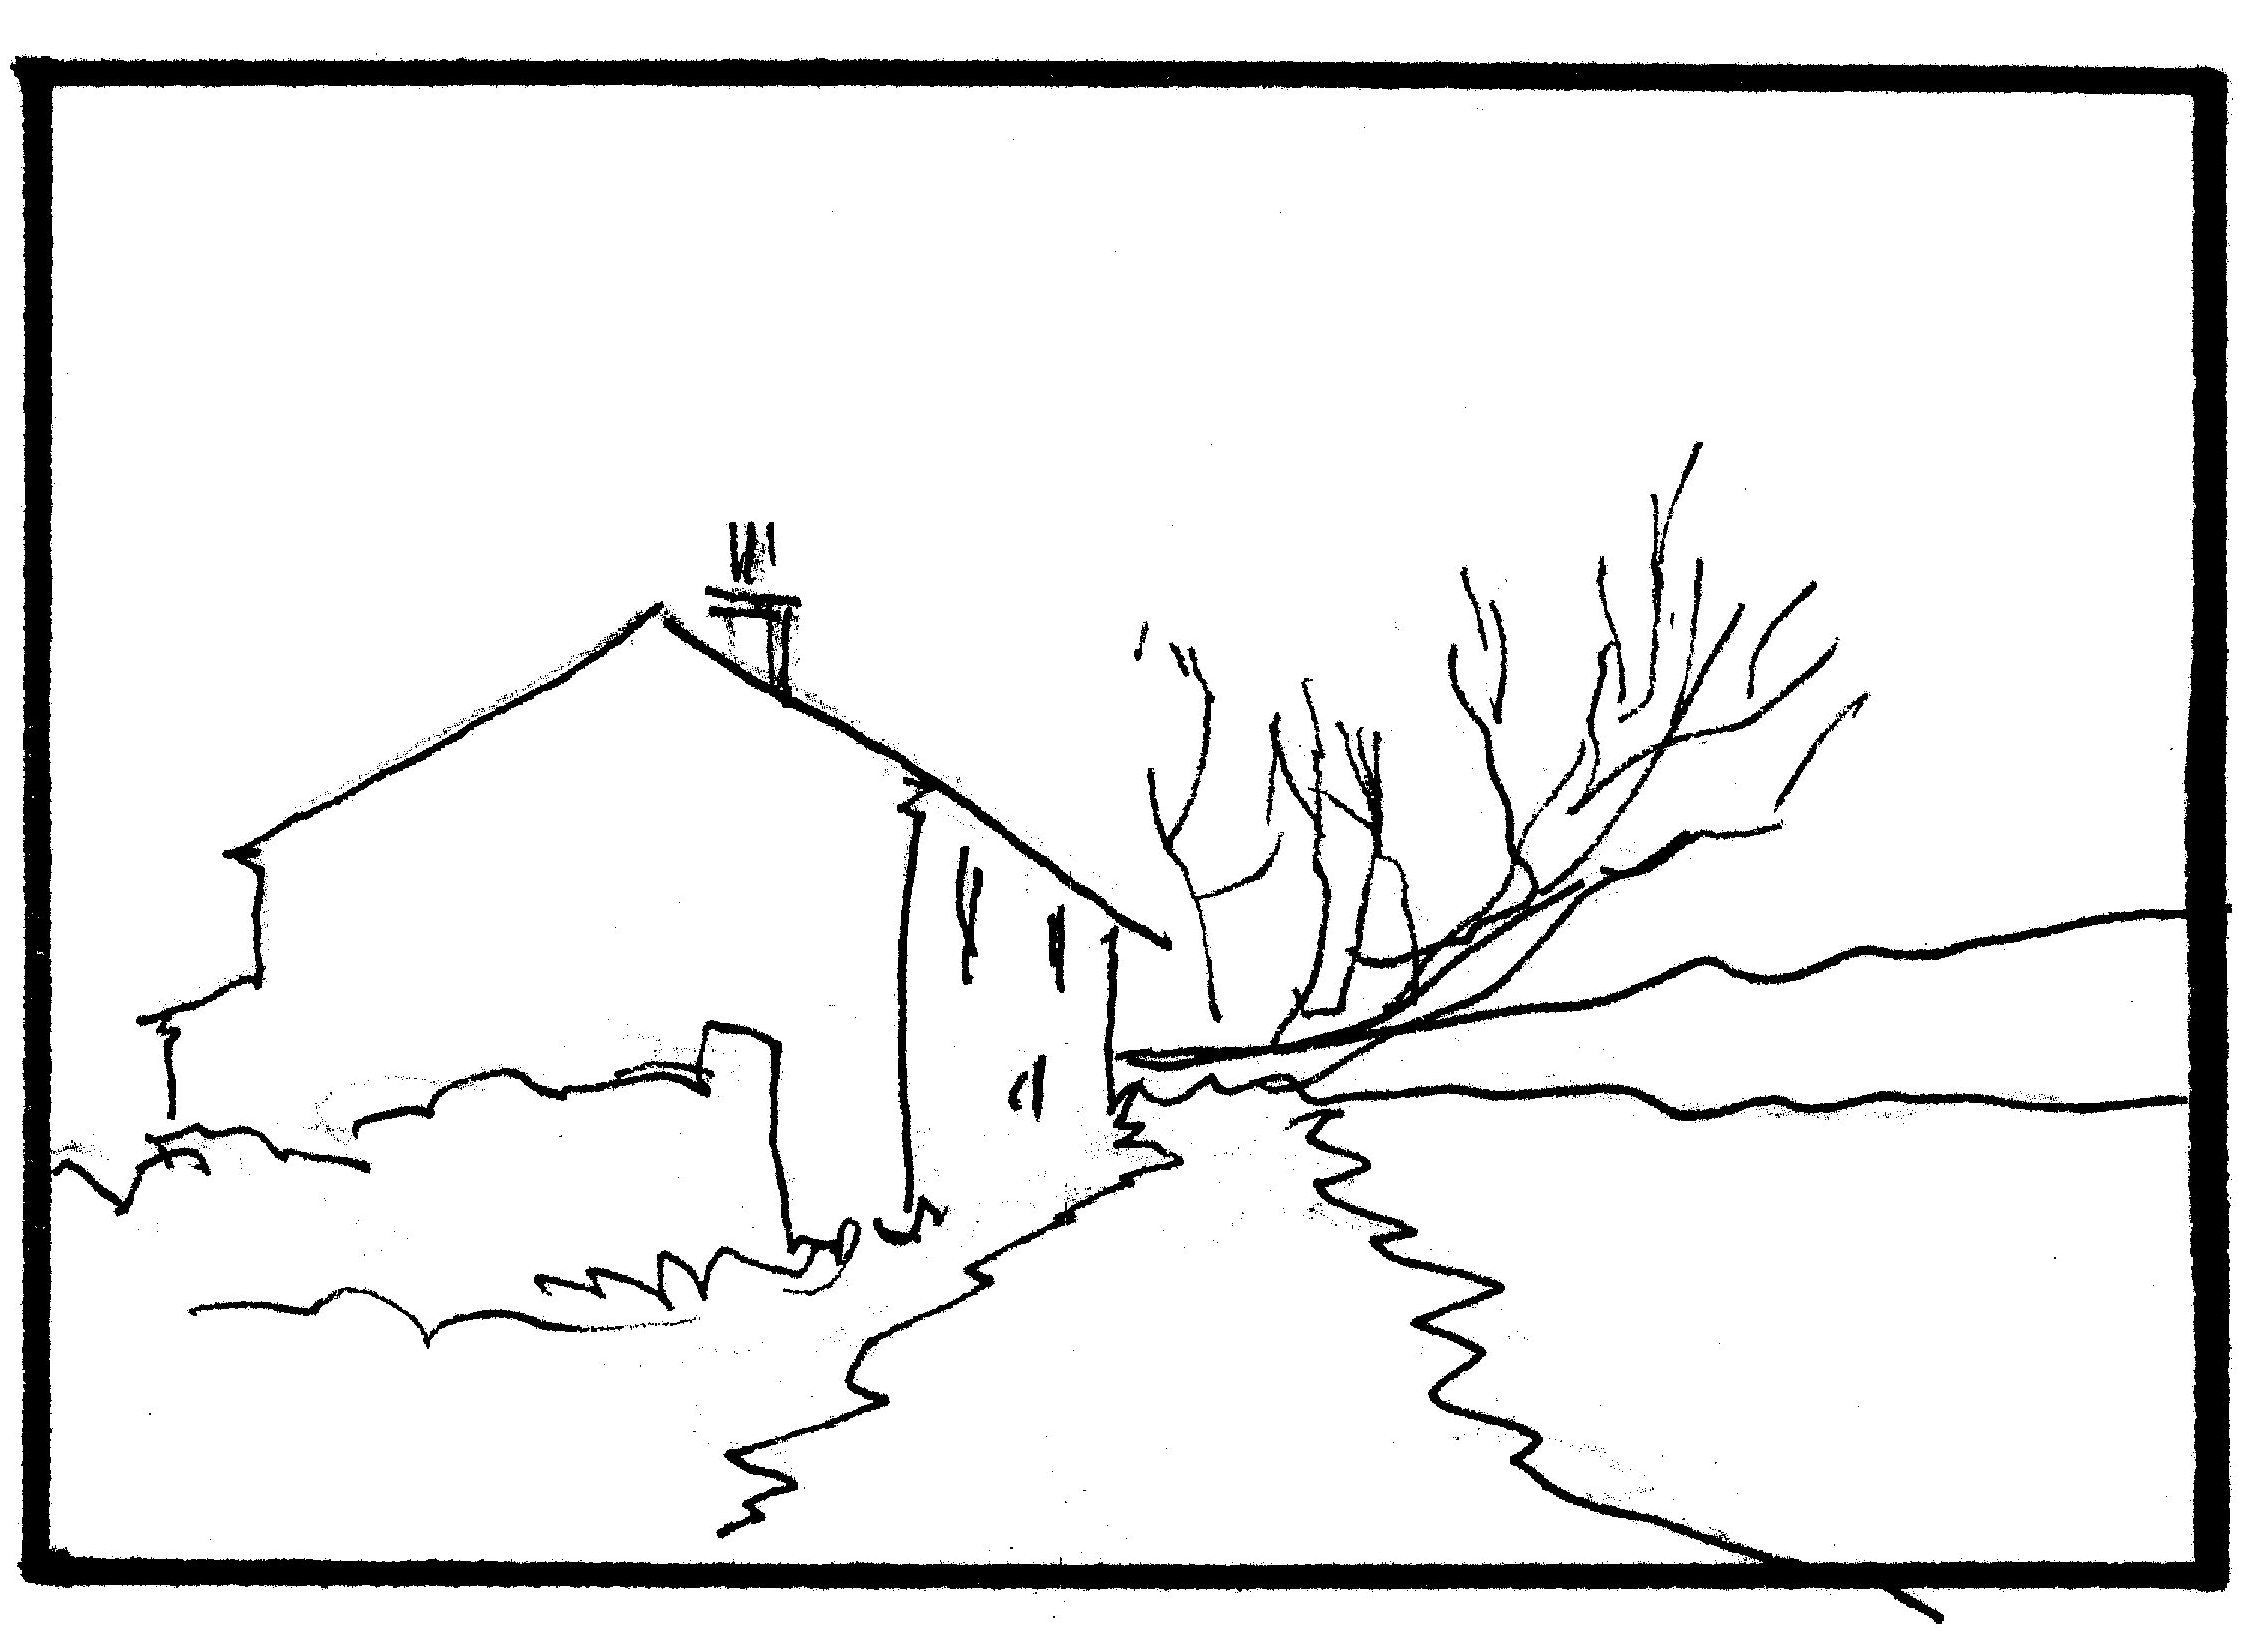 25 Landscape Drawing Outline Pictures And Ideas On Pro Landscape